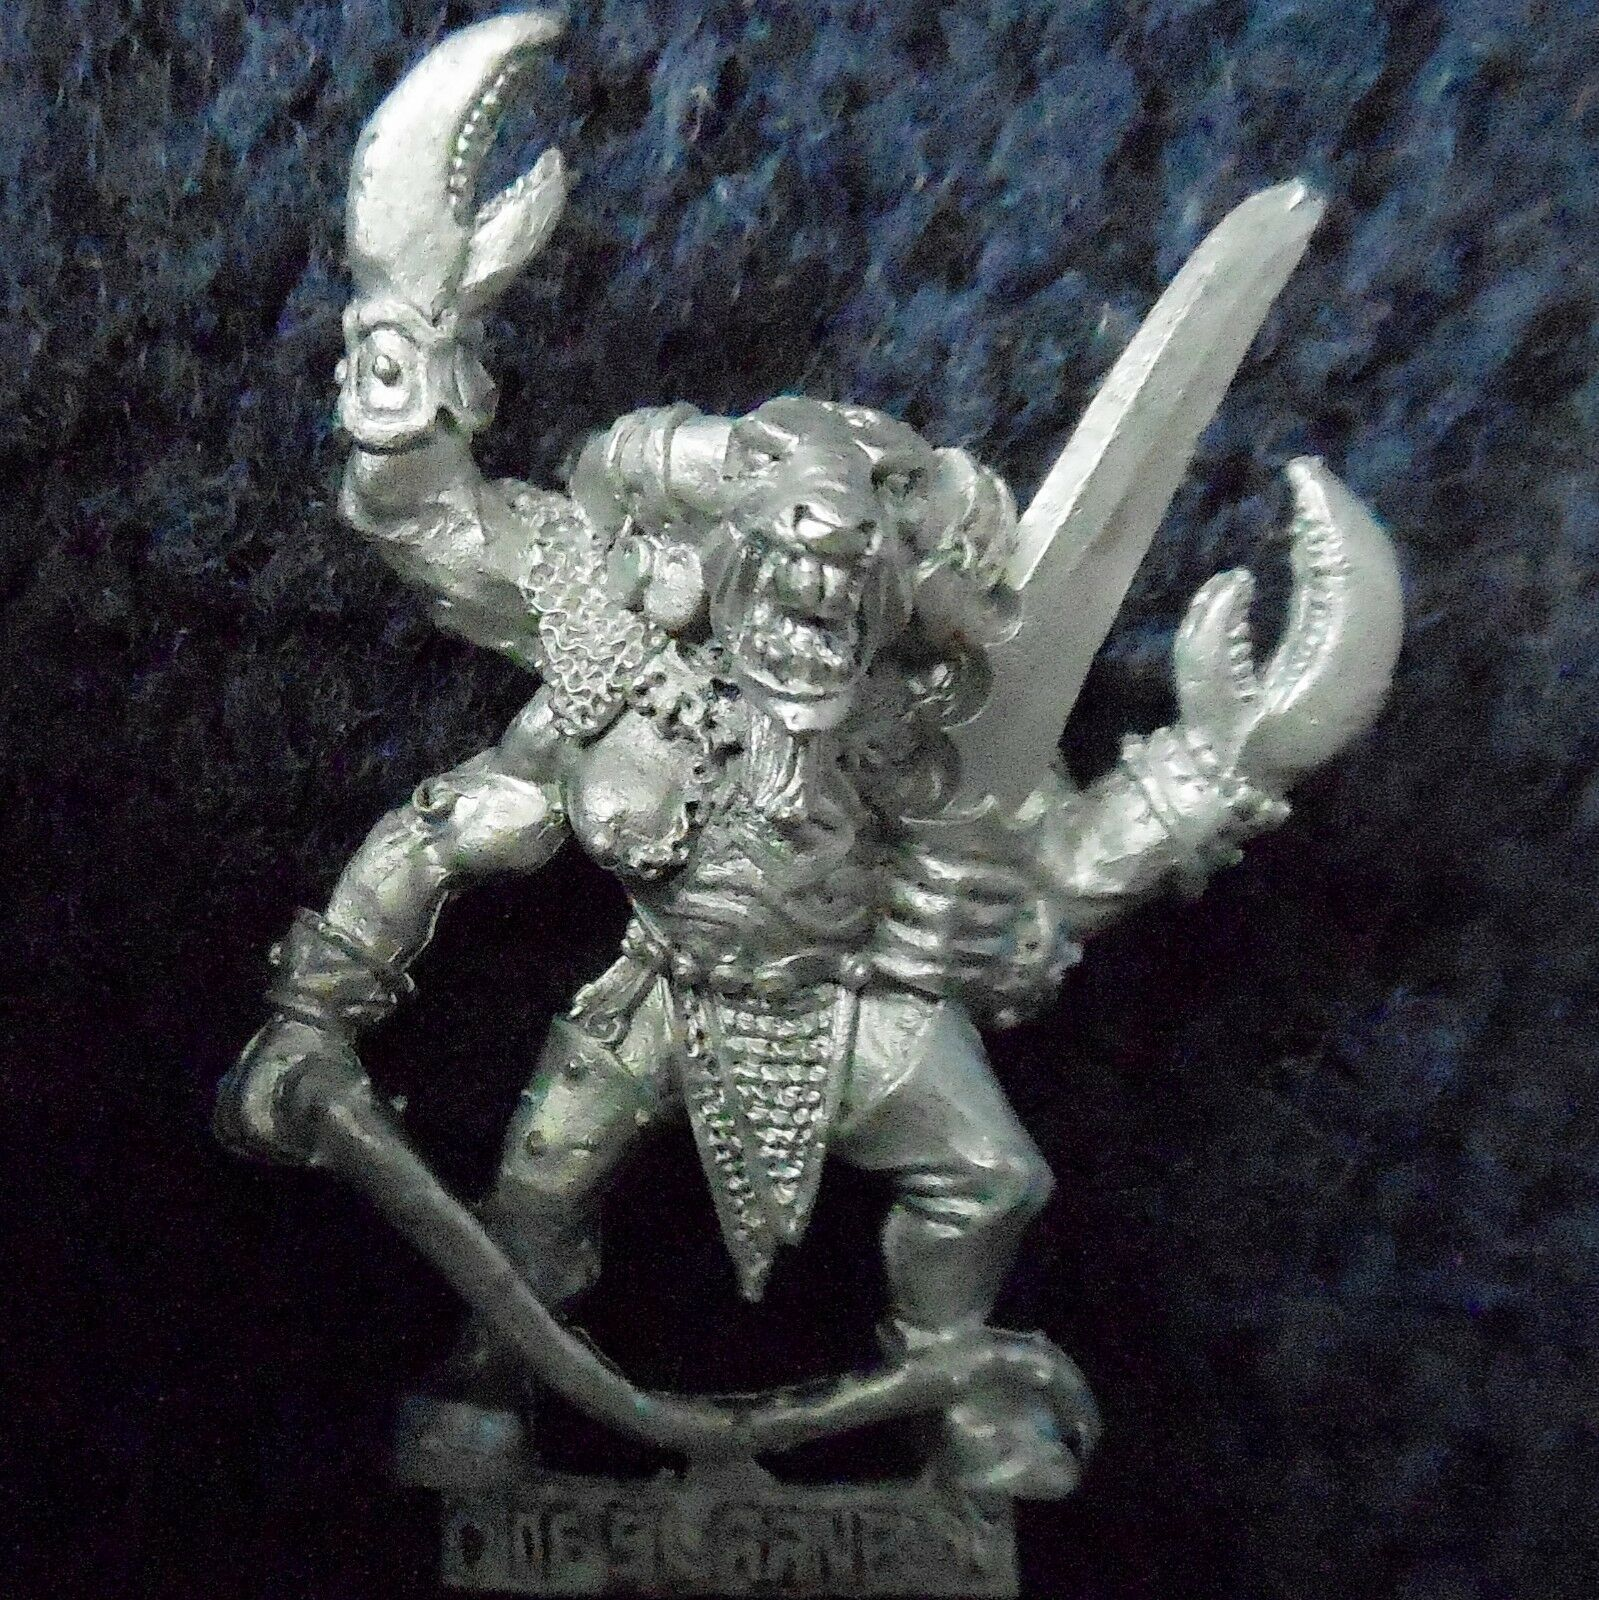 1992 Epic Chaos Keeper of Secrets 2 Daemon Citadel Warhammer Army 6mm 40K Demon